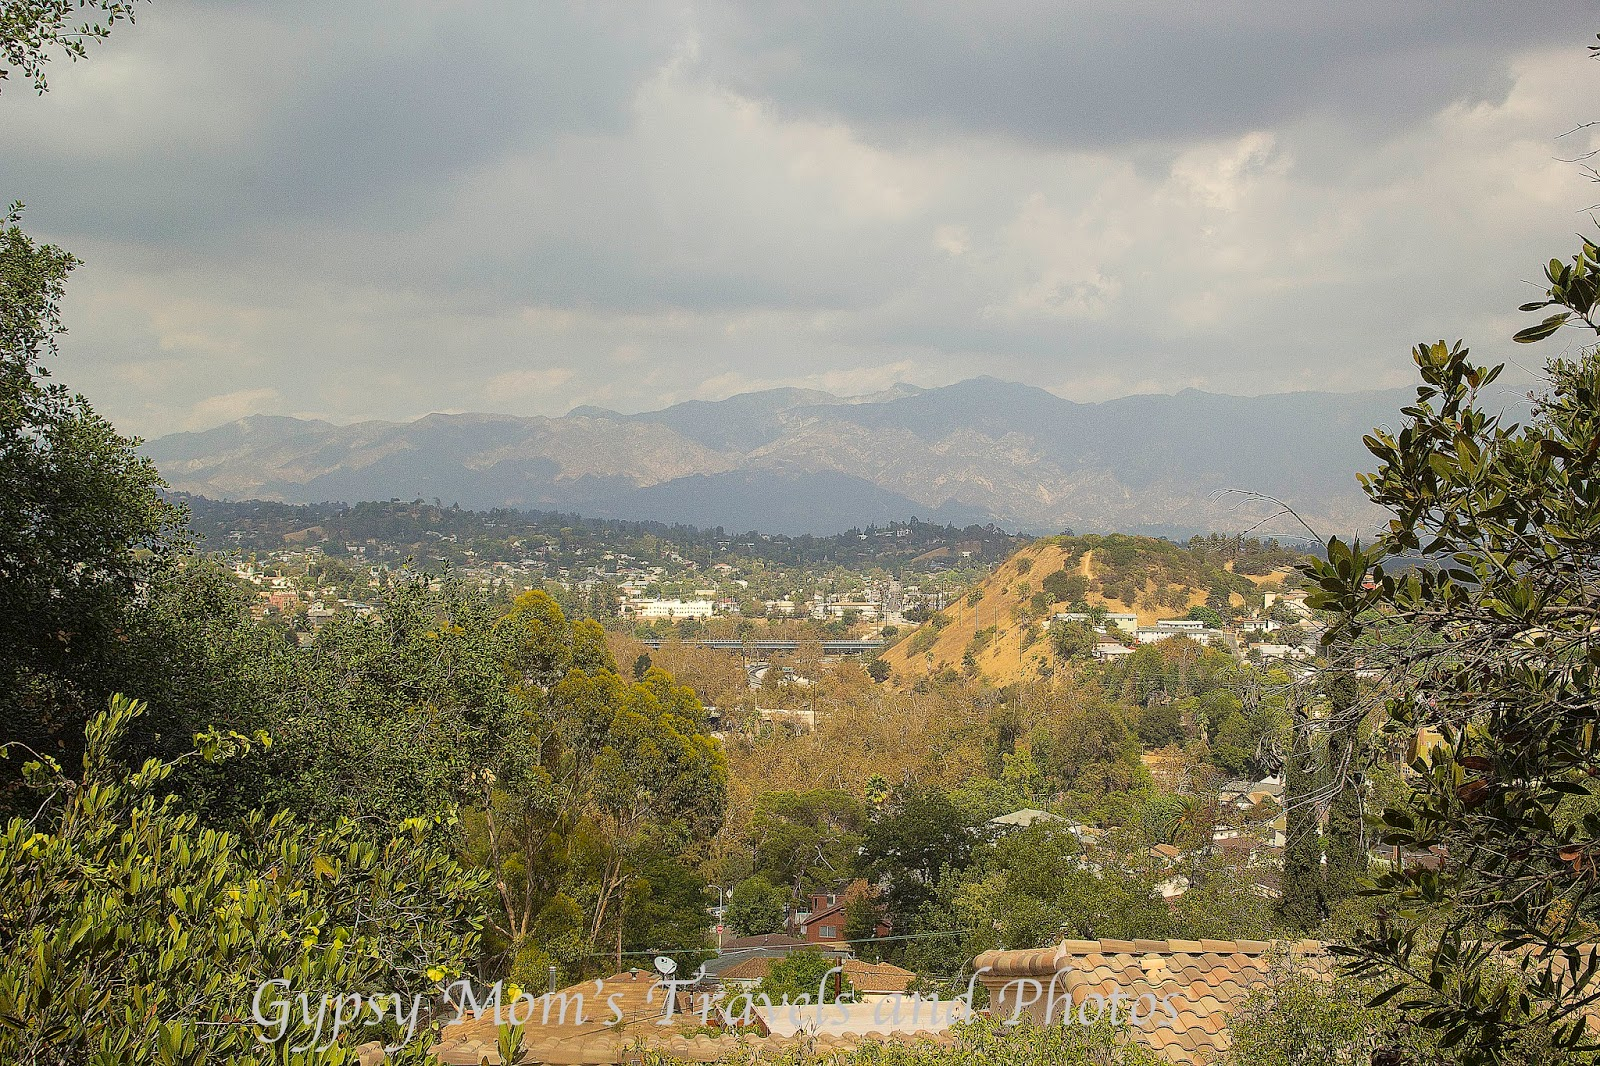 View from Secret stairs walk looking at San Gabriel Mountains and valley